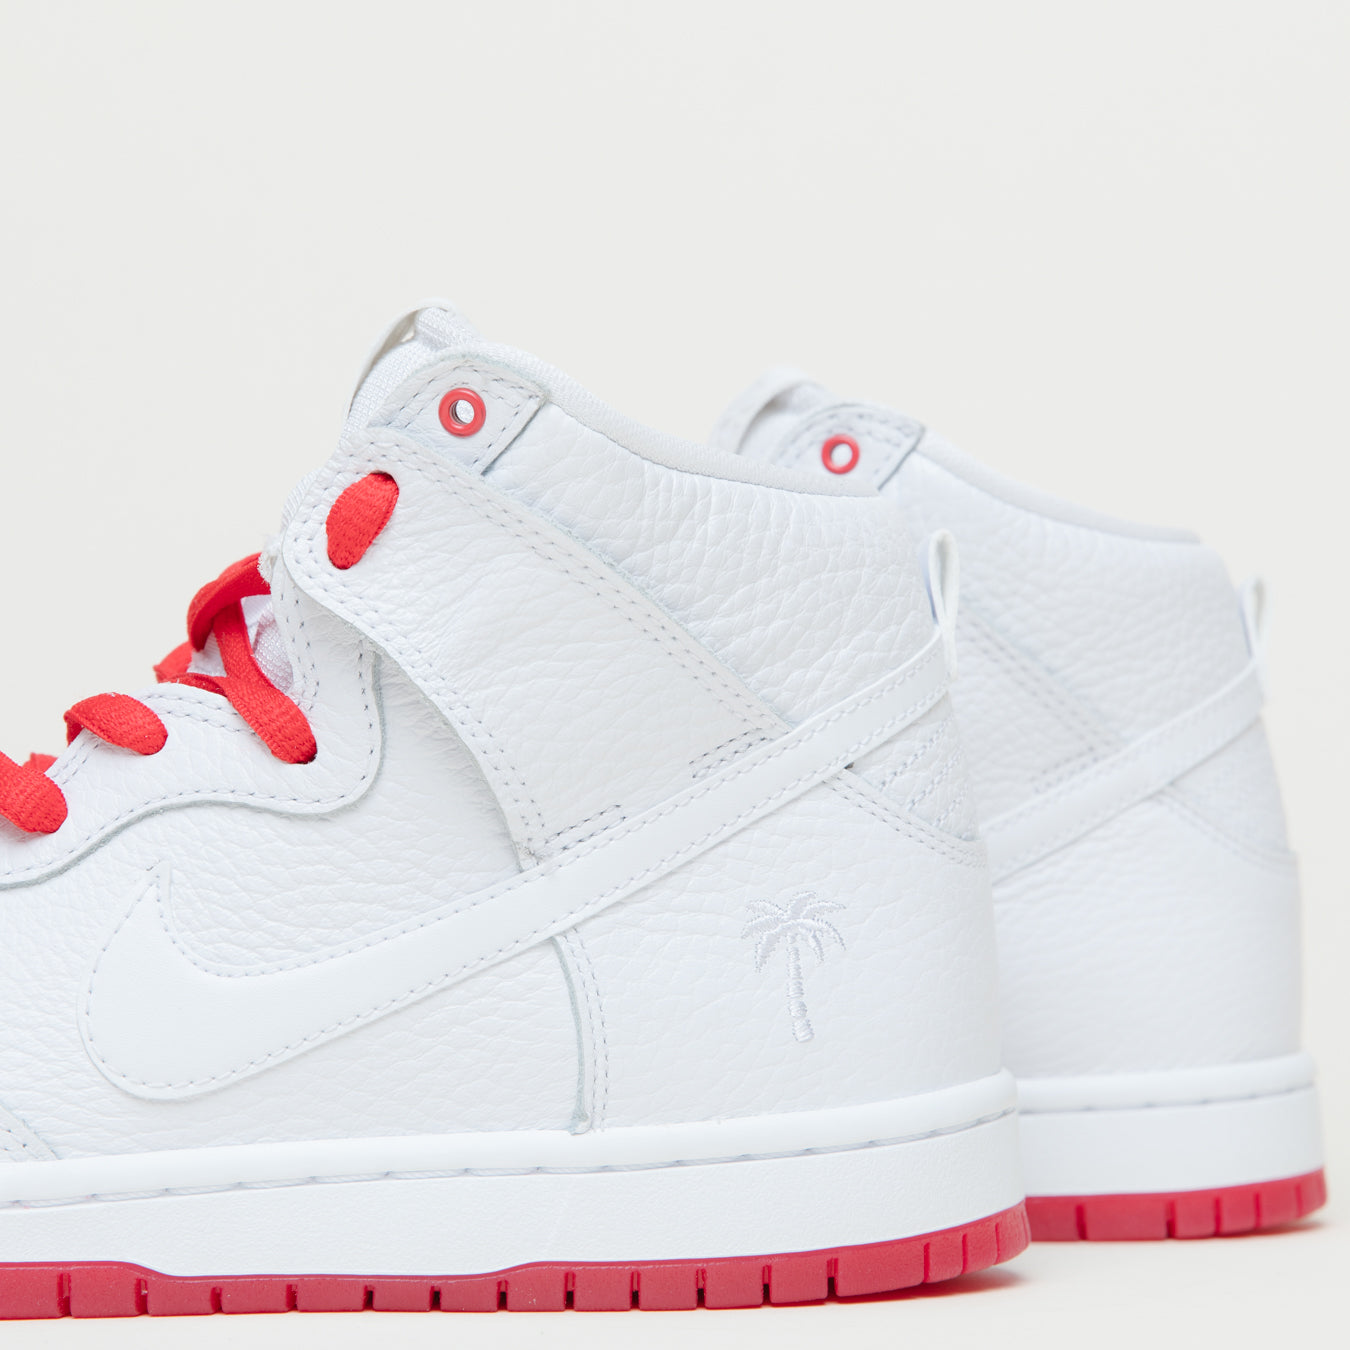 eb05c6c22464 ... uk nike sb zoom dunk high pro qs white white university red blanc b1e0e  11dc4